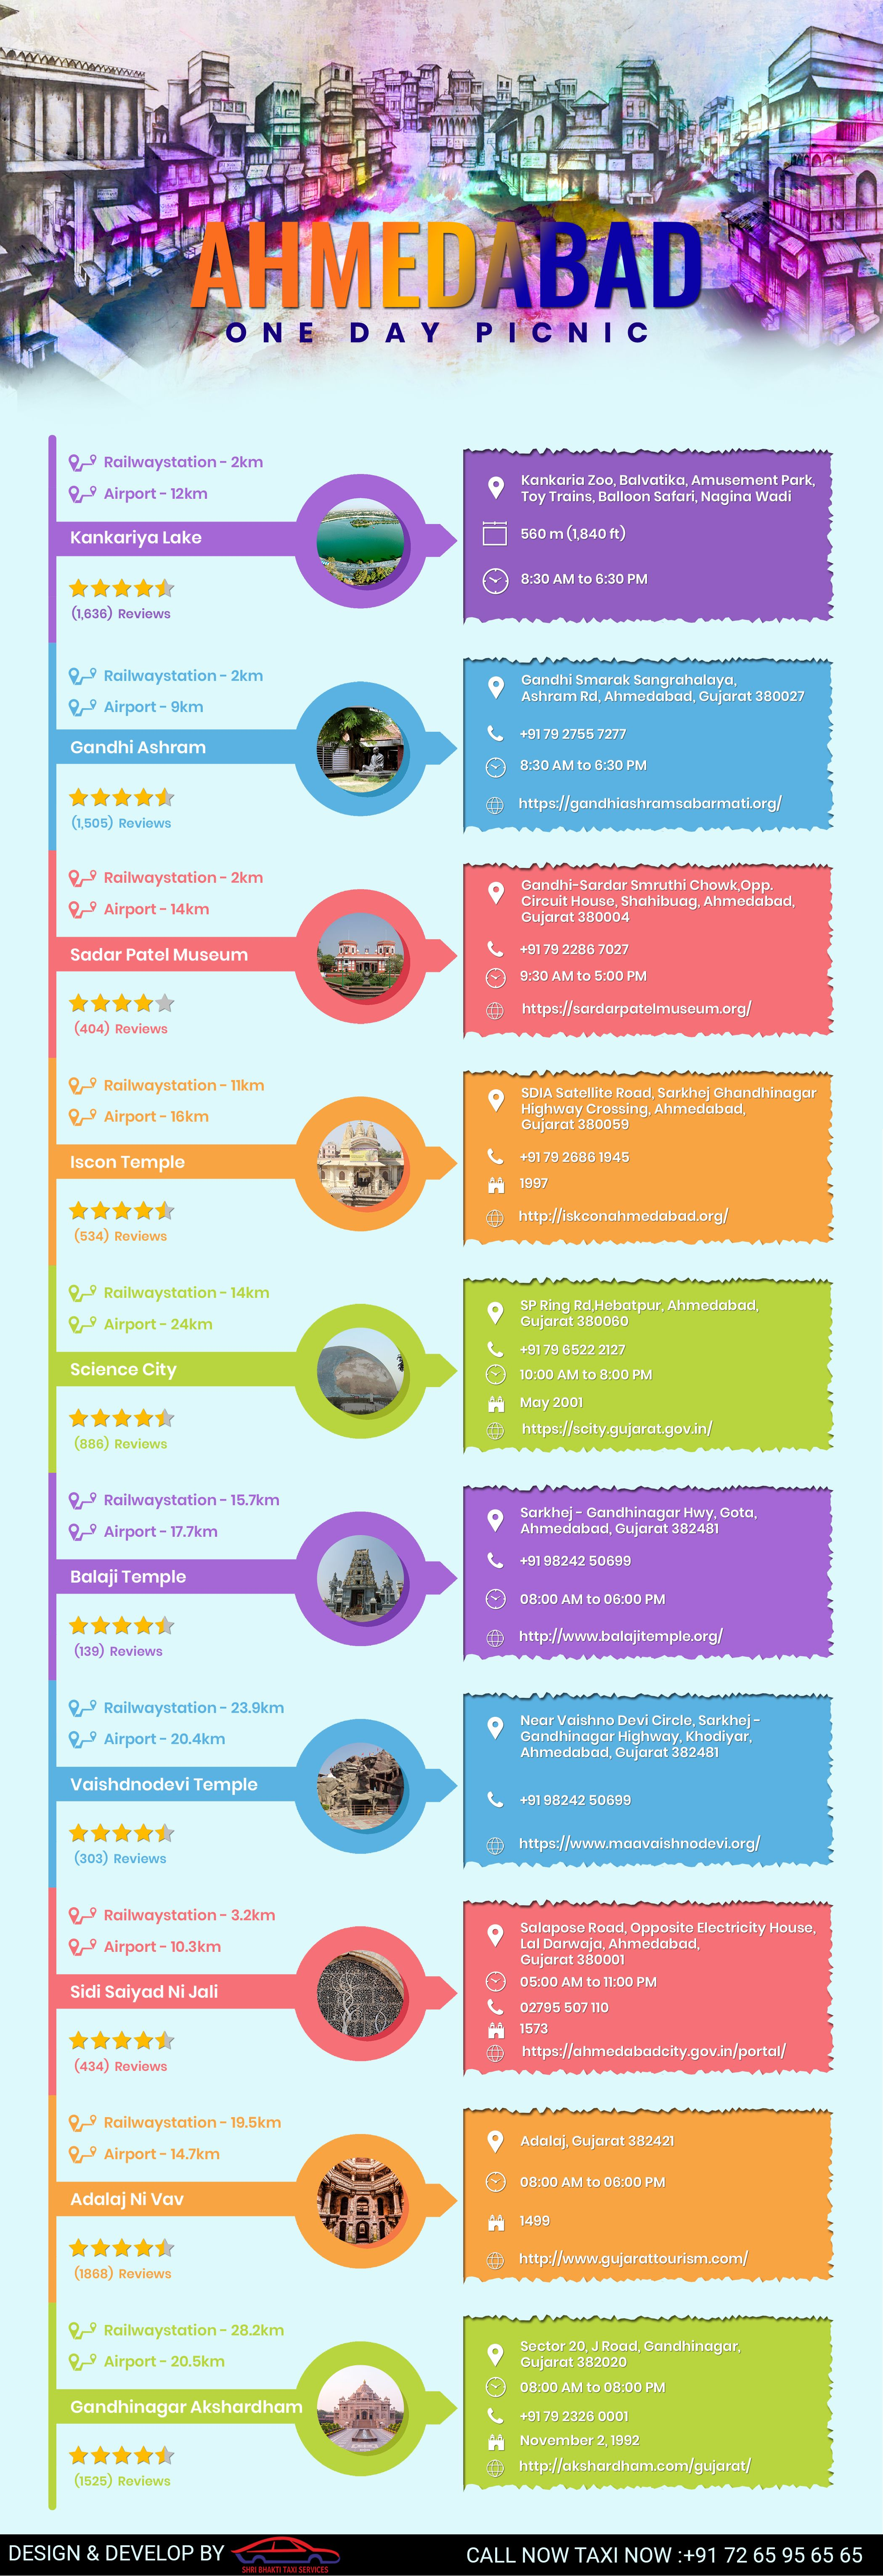 Pin By Shri Bhakti Taxi Services On Ahmedabad Most Visited Places